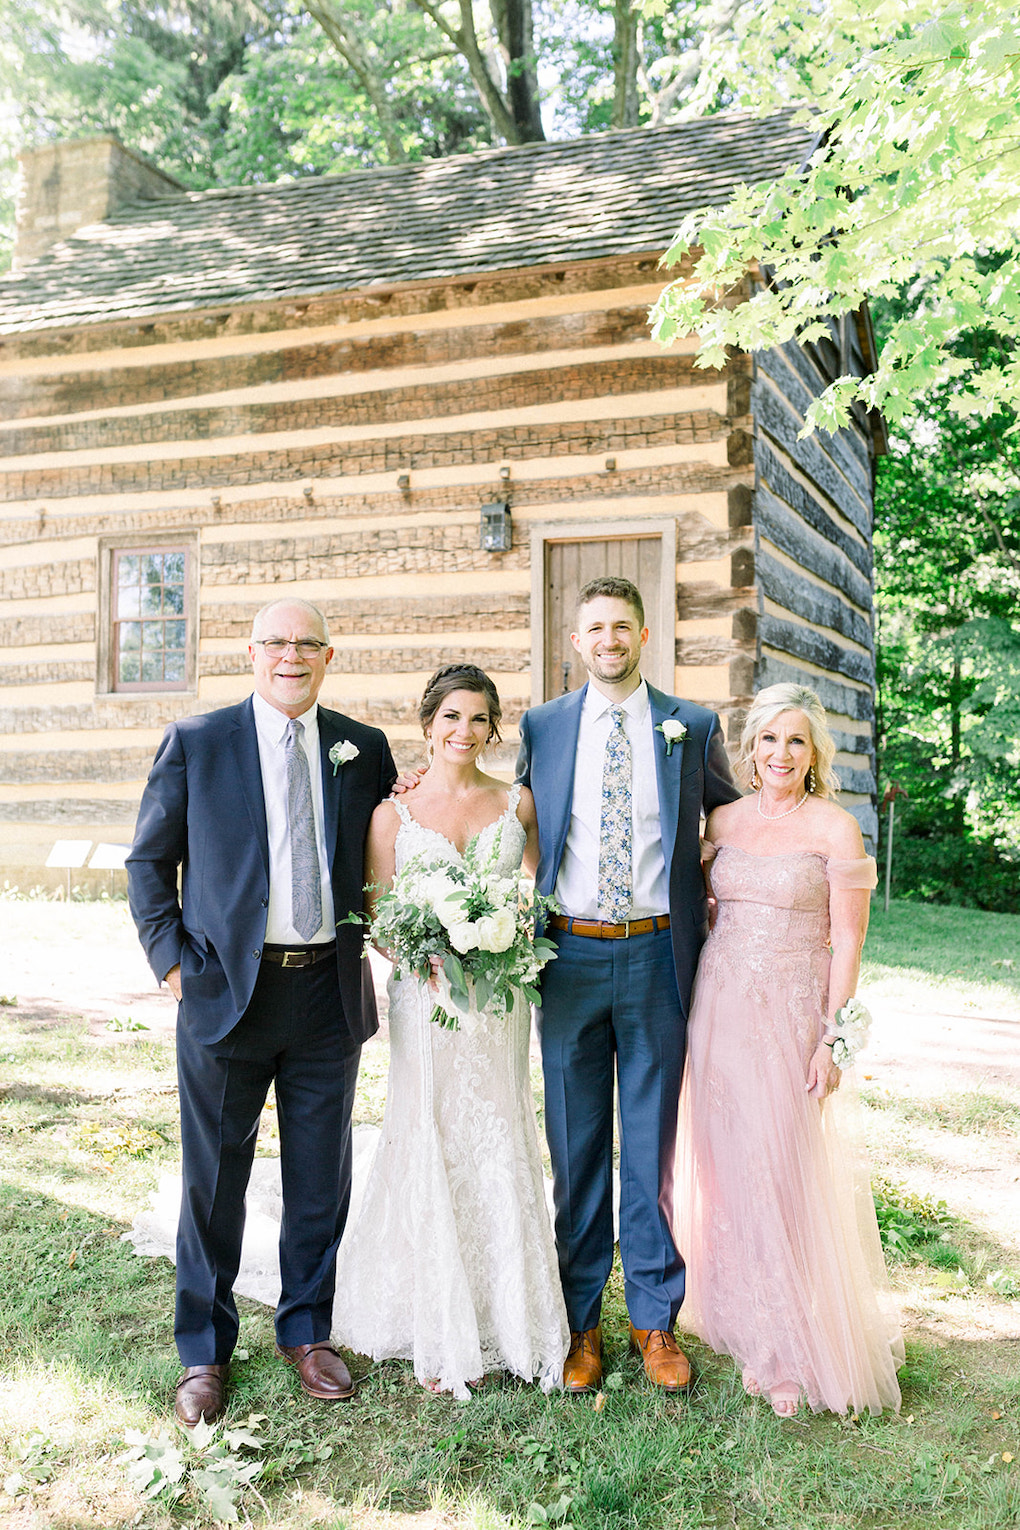 Outdoor Wedding Family Photos: Pittsburgh Botanic Garden wedding planned by Exhale Events. See more wedding inspiration at exhale-events.com!